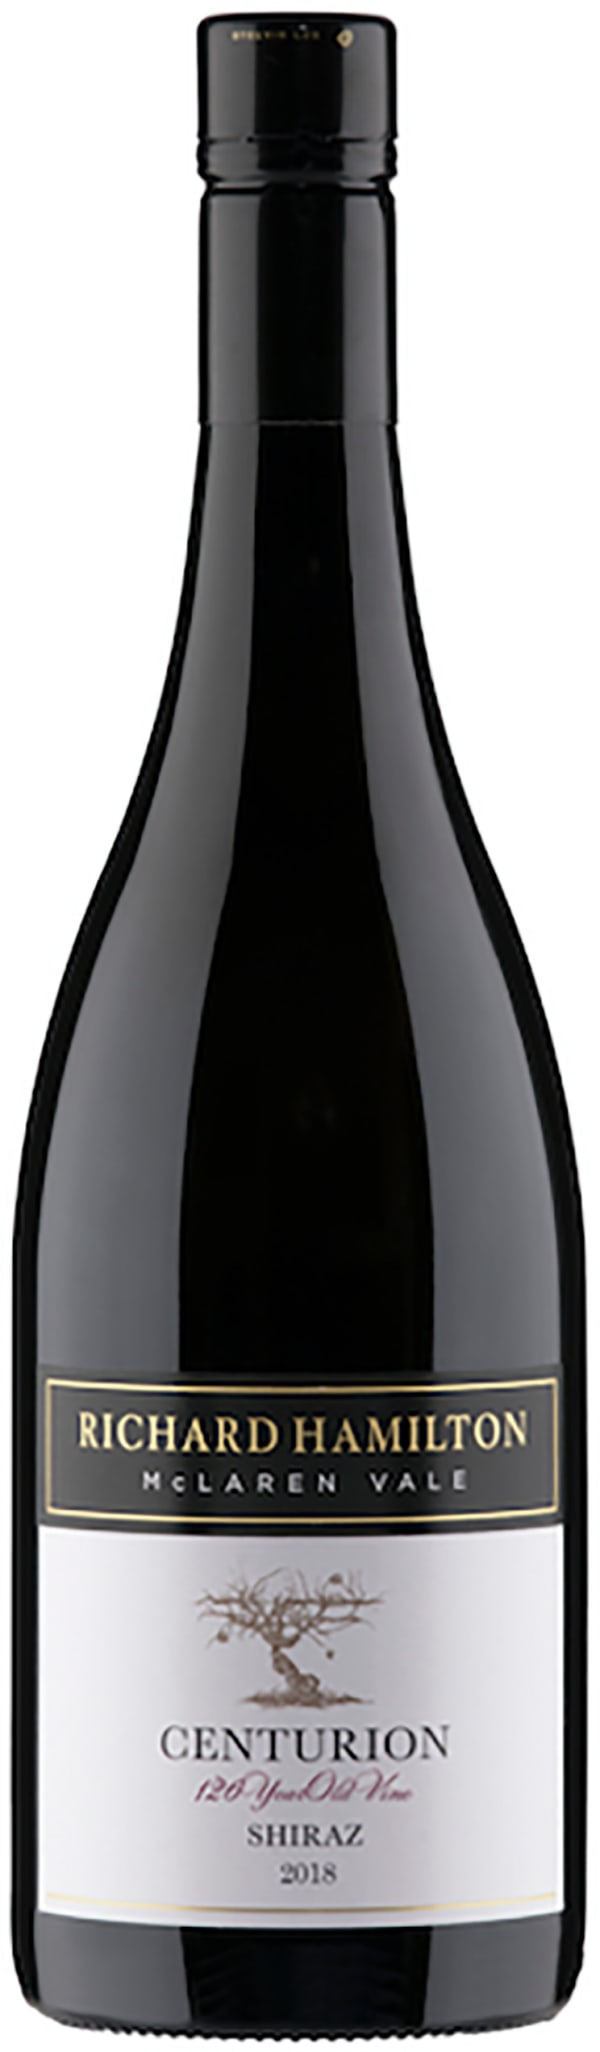 Richard Hamilton Centurion Shiraz 2018